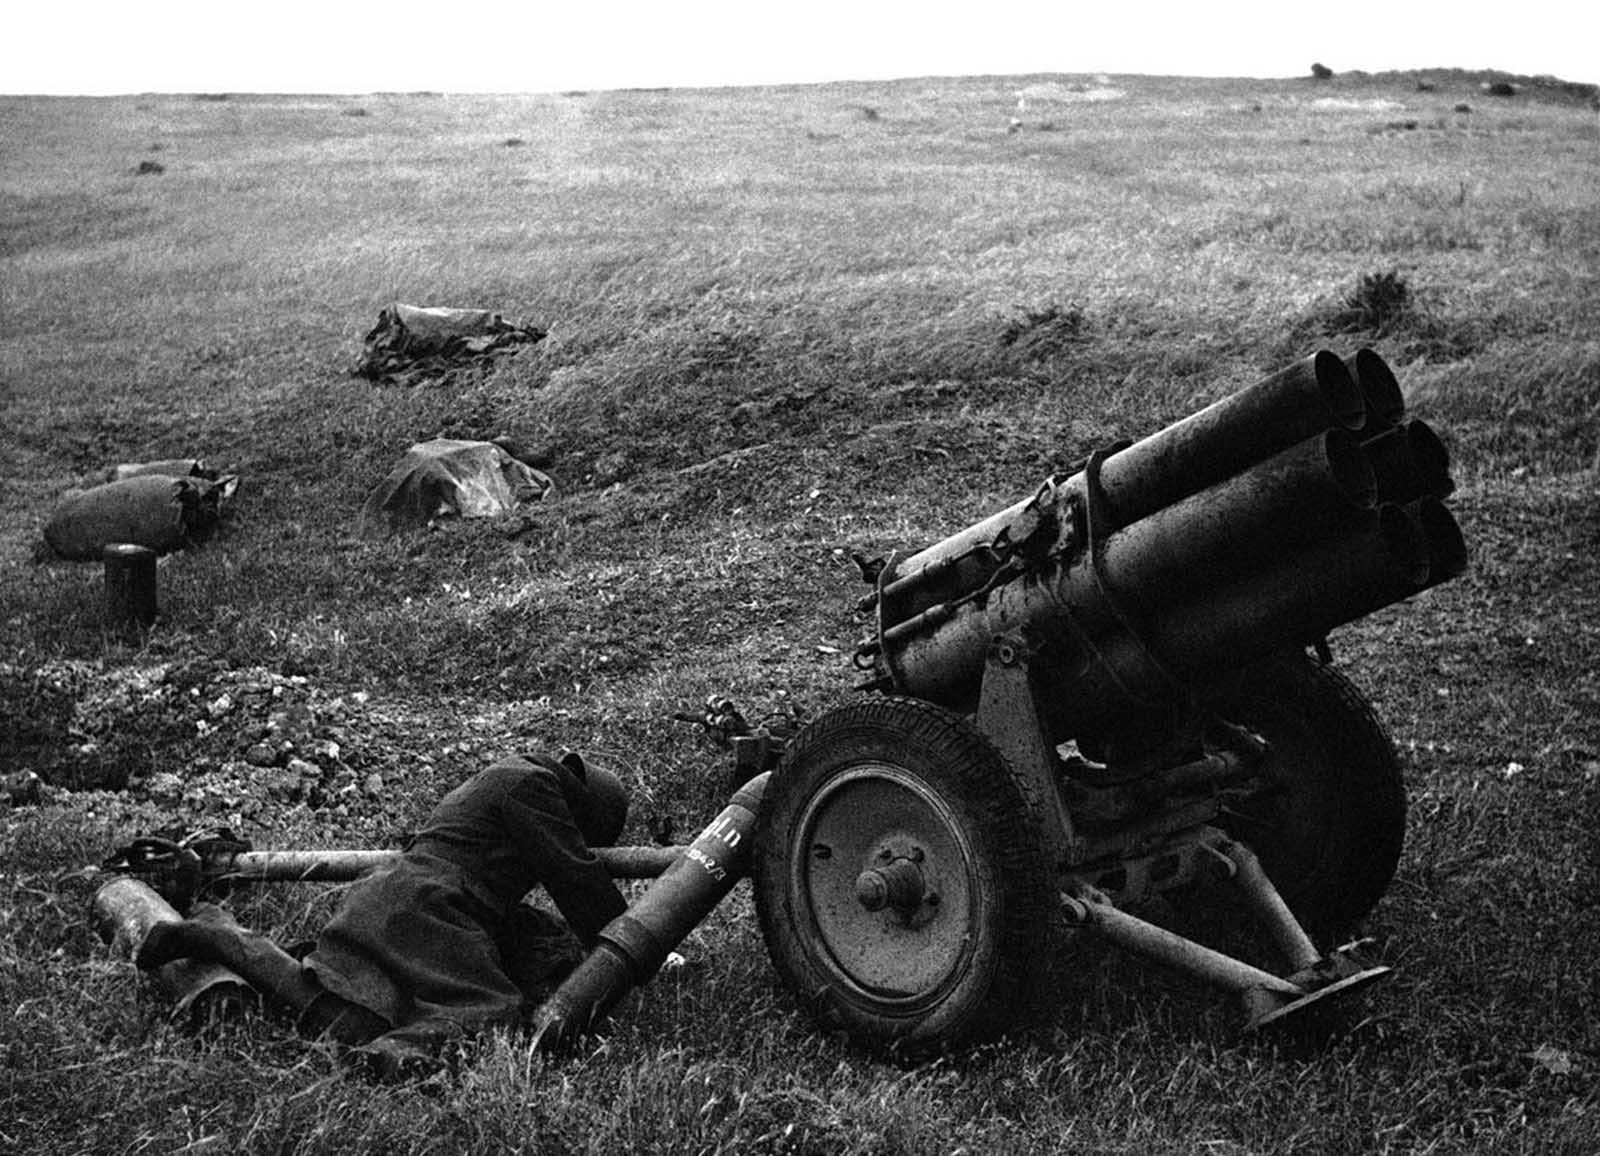 A German soldier lies sprawled against a mortar after a bayonet attack in Tunis, Tunisia, on May 17, 1943.